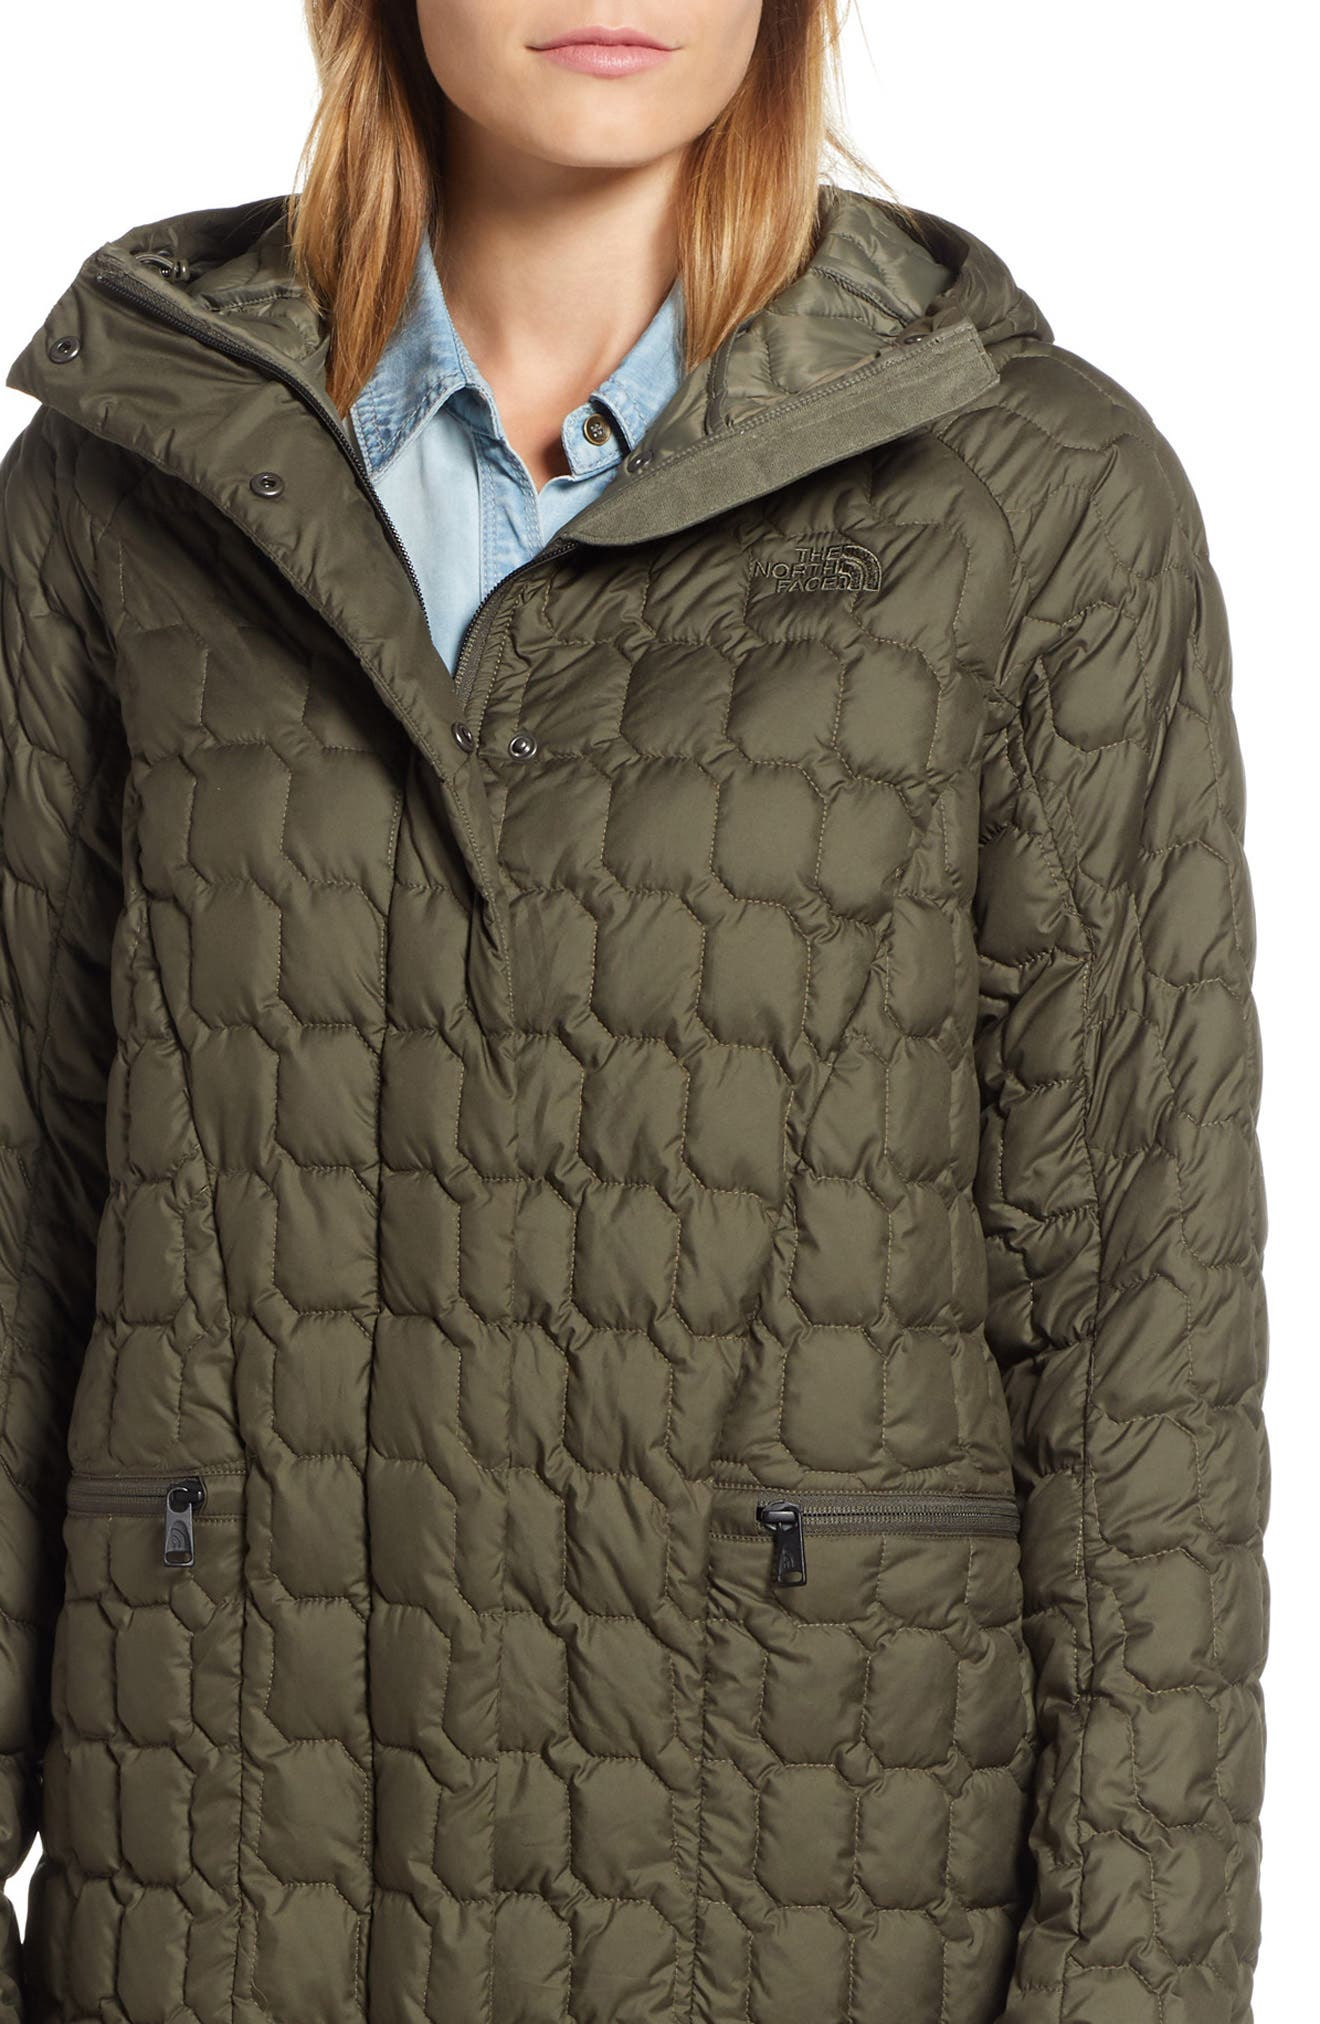 THE NORTH FACE, Thermoball<sup>™</sup> Water Resistant Duster Jacket, Alternate thumbnail 5, color, 301